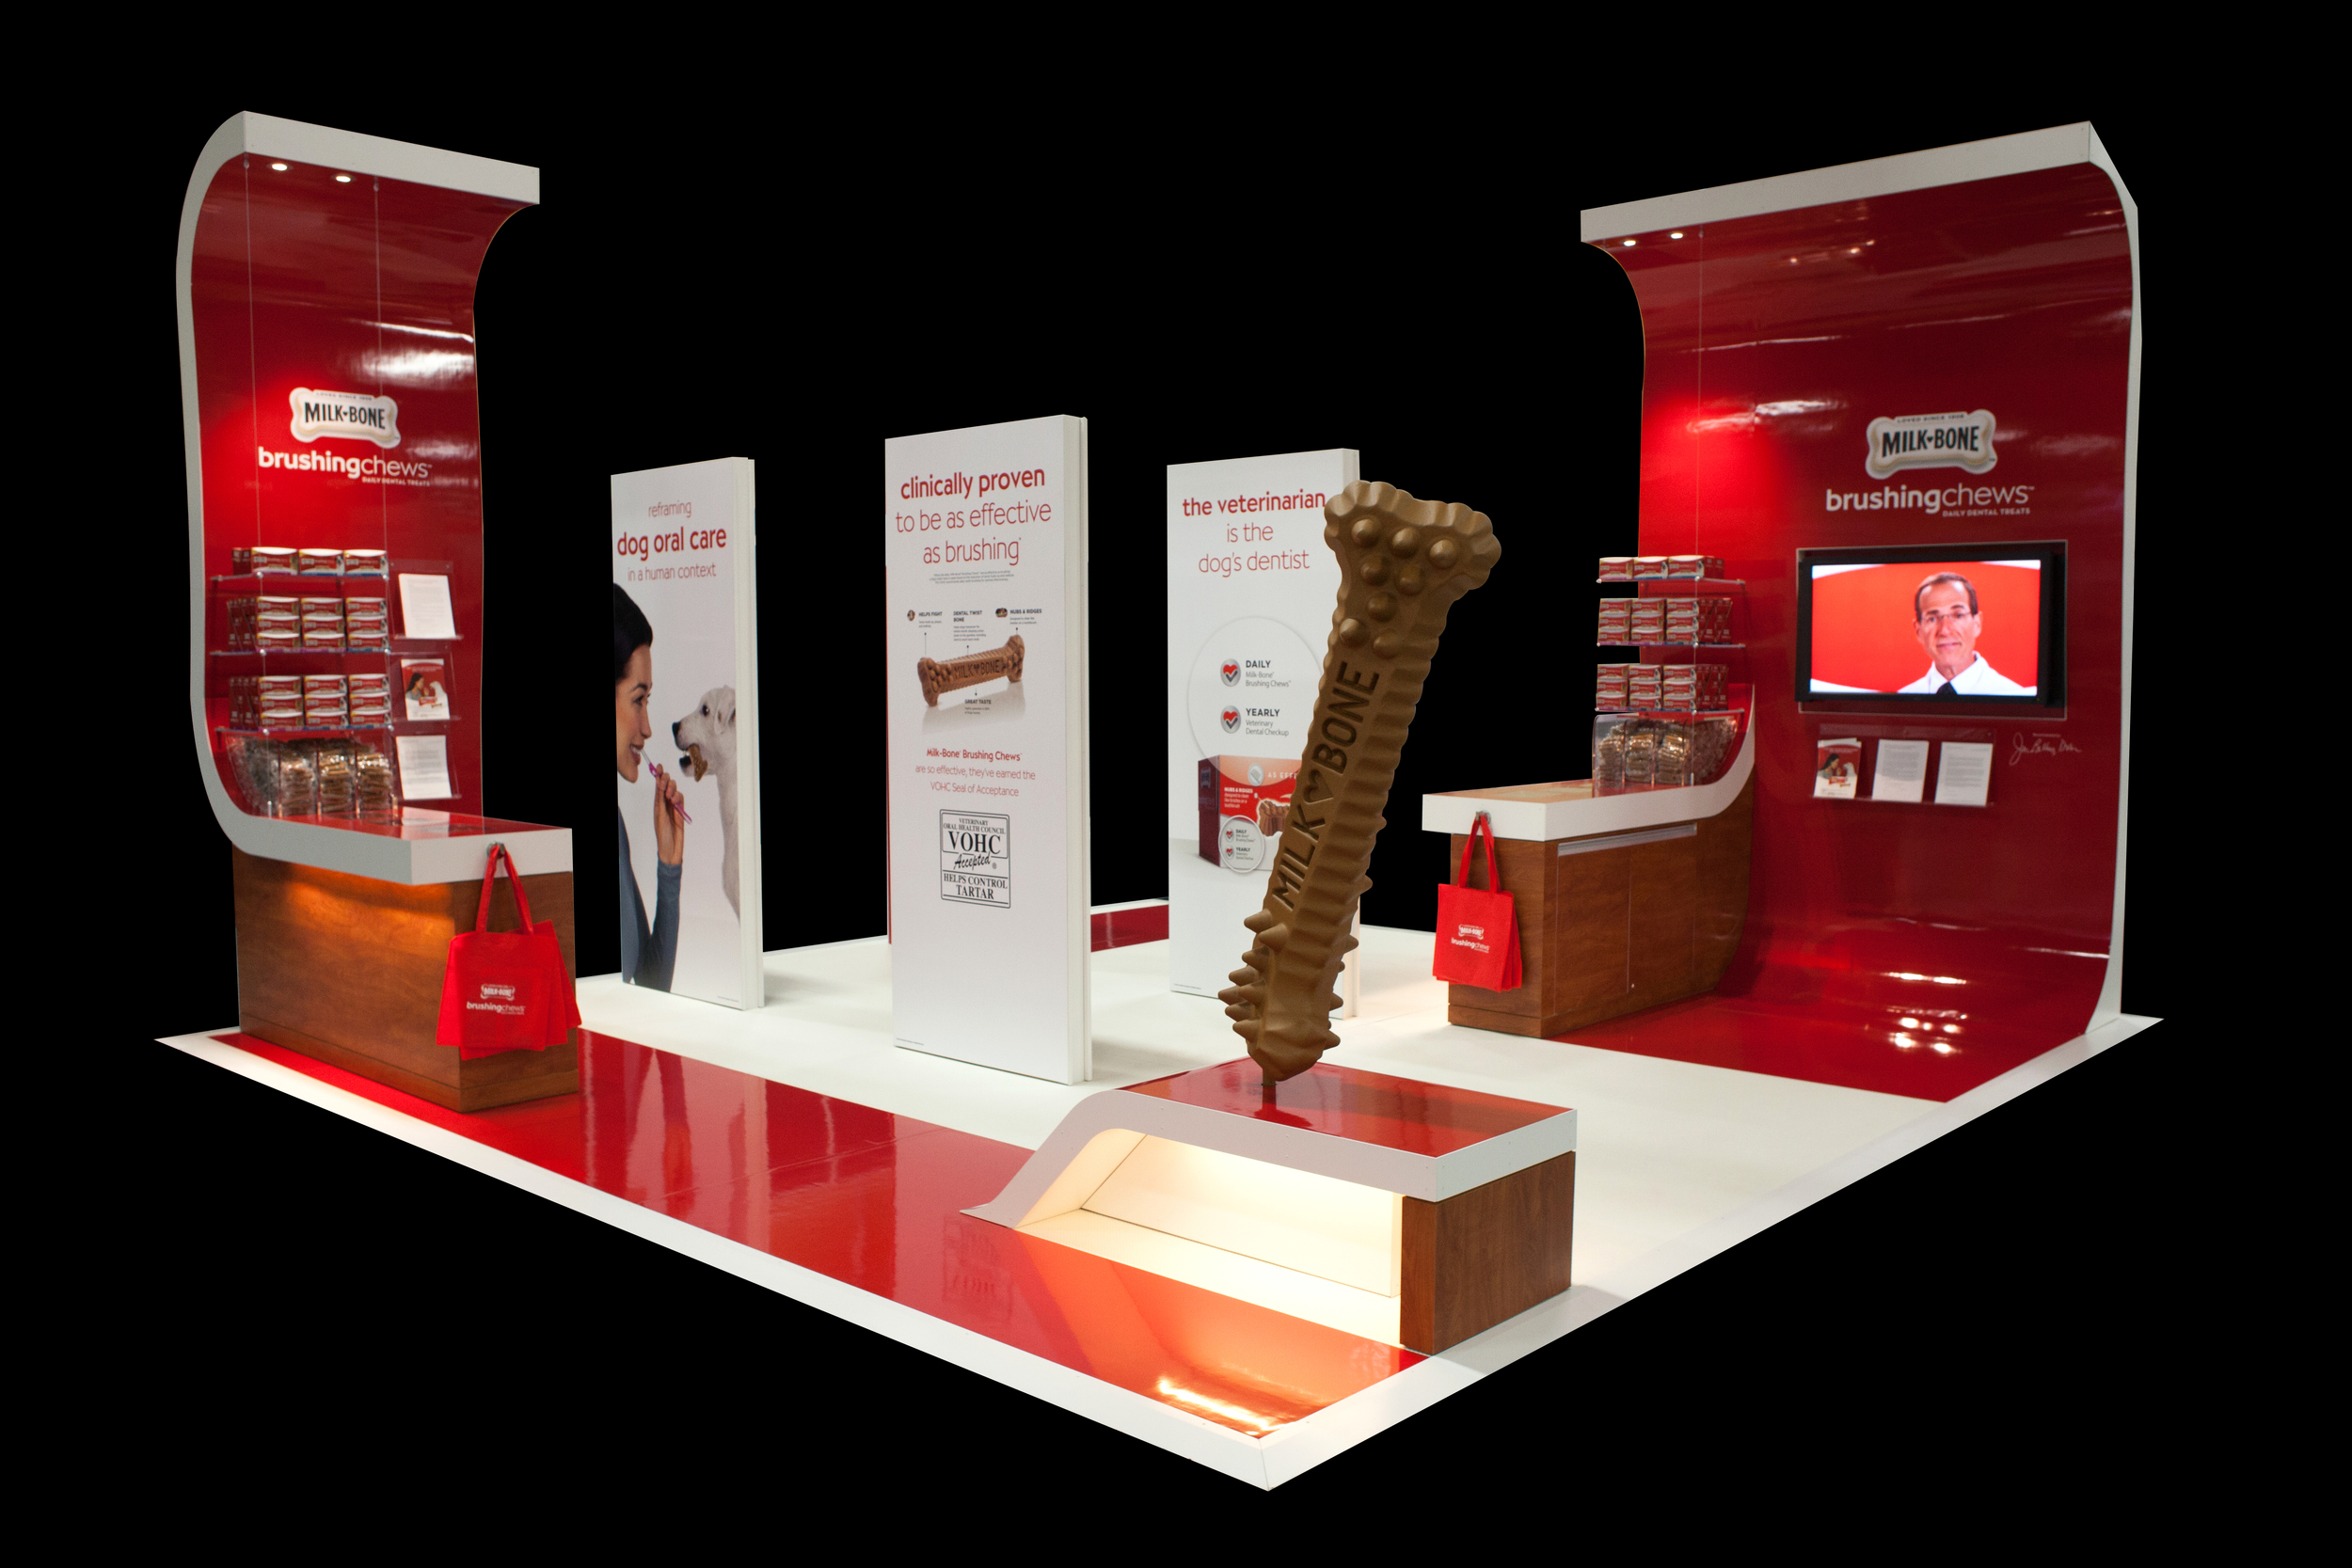 MILK-BONE BRANDED TRADESHOW BOOTH